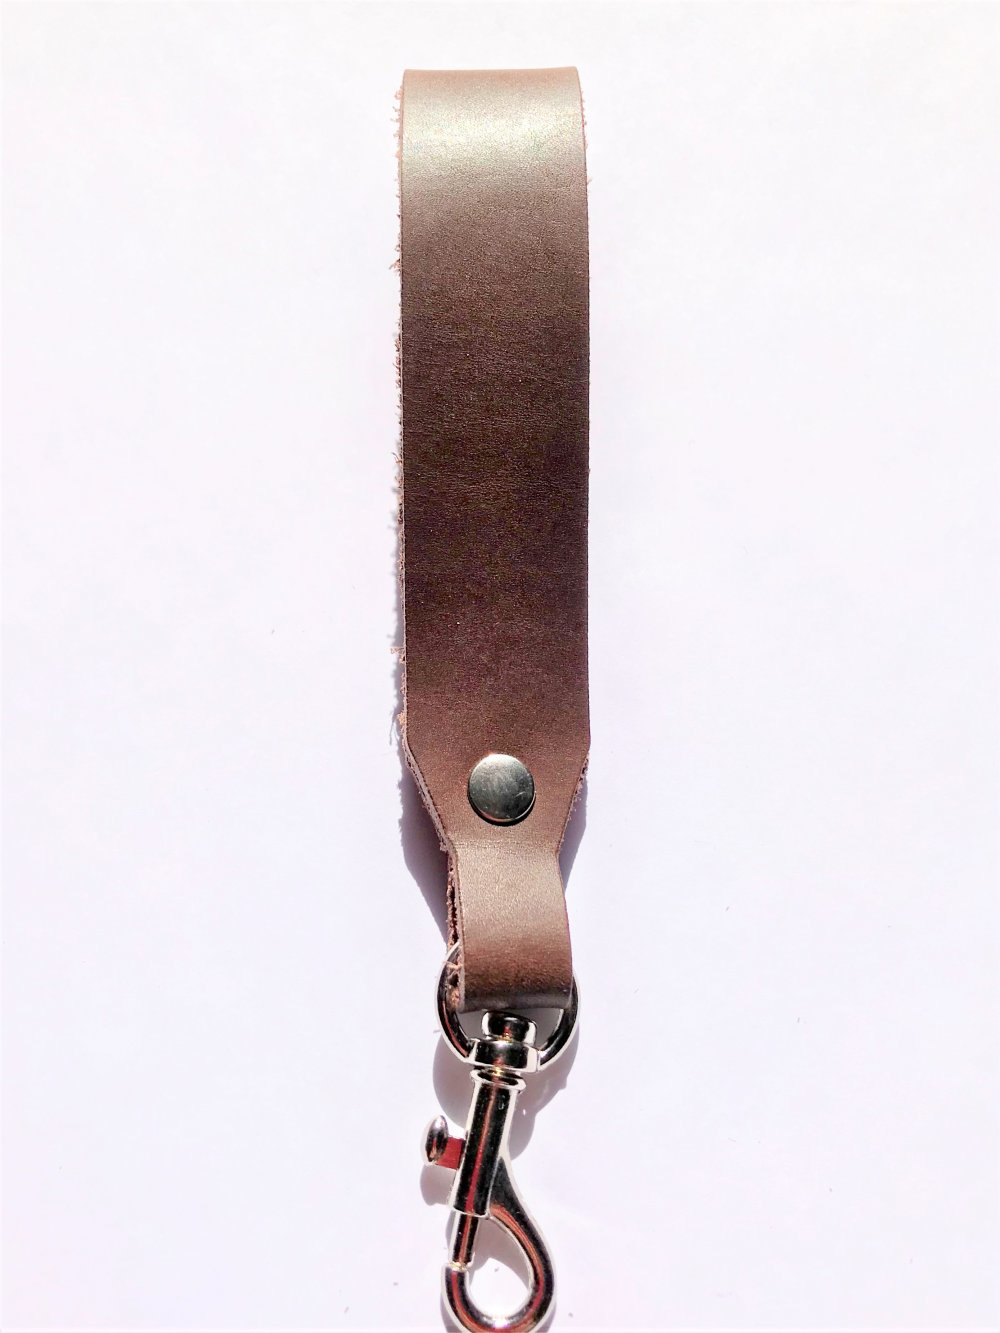 Trigger Hook Key Ring<br>Bark Leather<br>25mm x 140mm